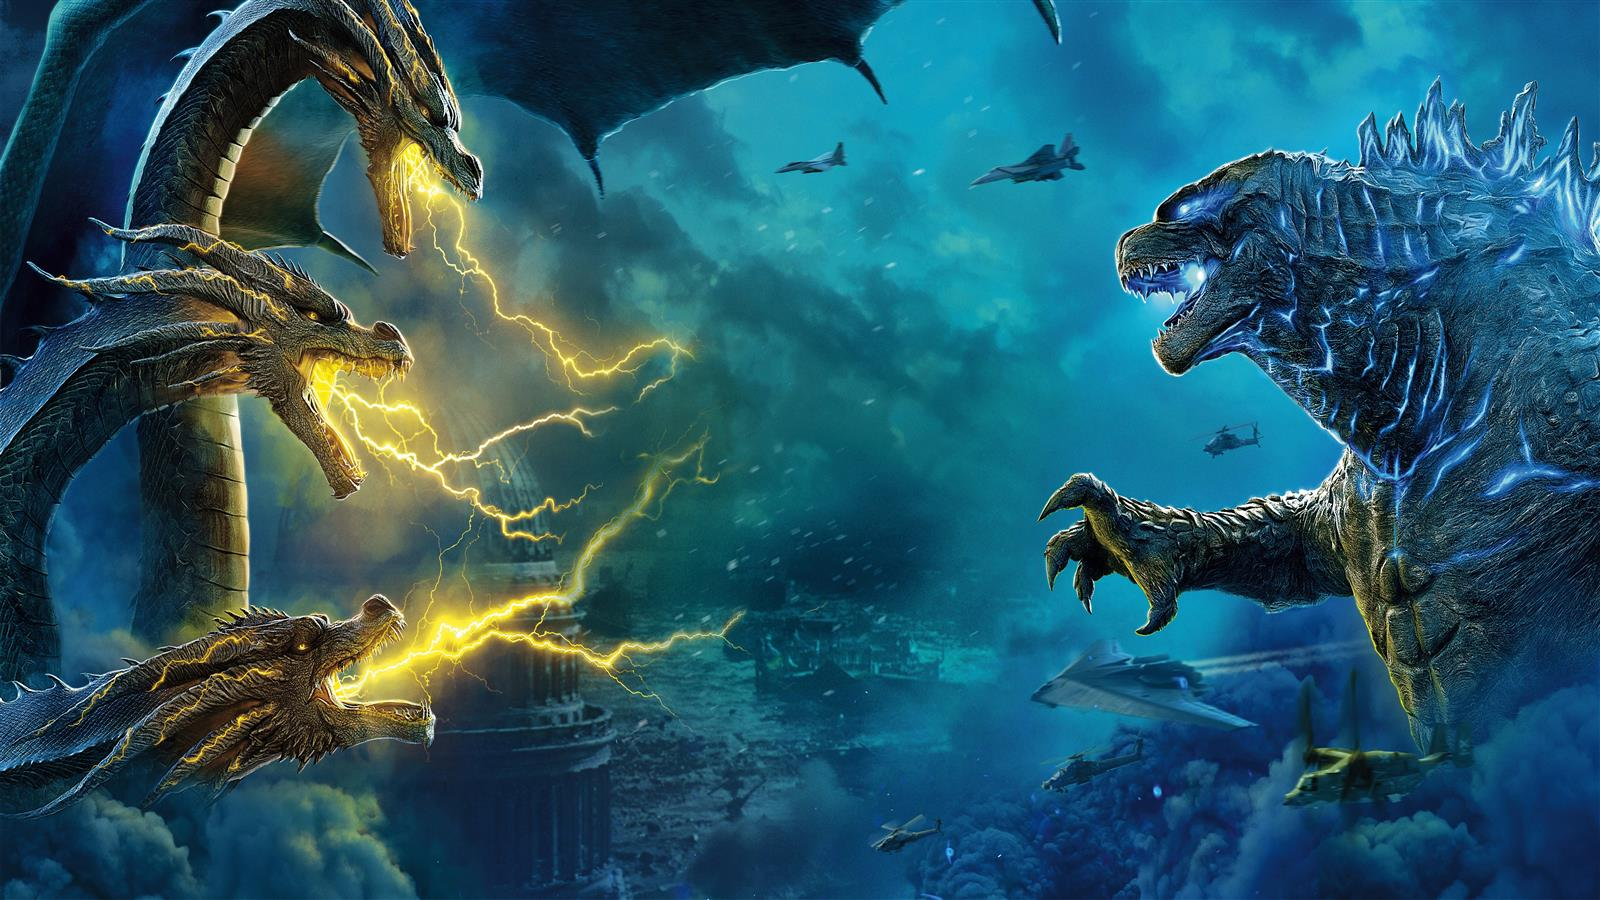 1600x900 2019 Movie Wallpaper of Godzilla King of the Monsters